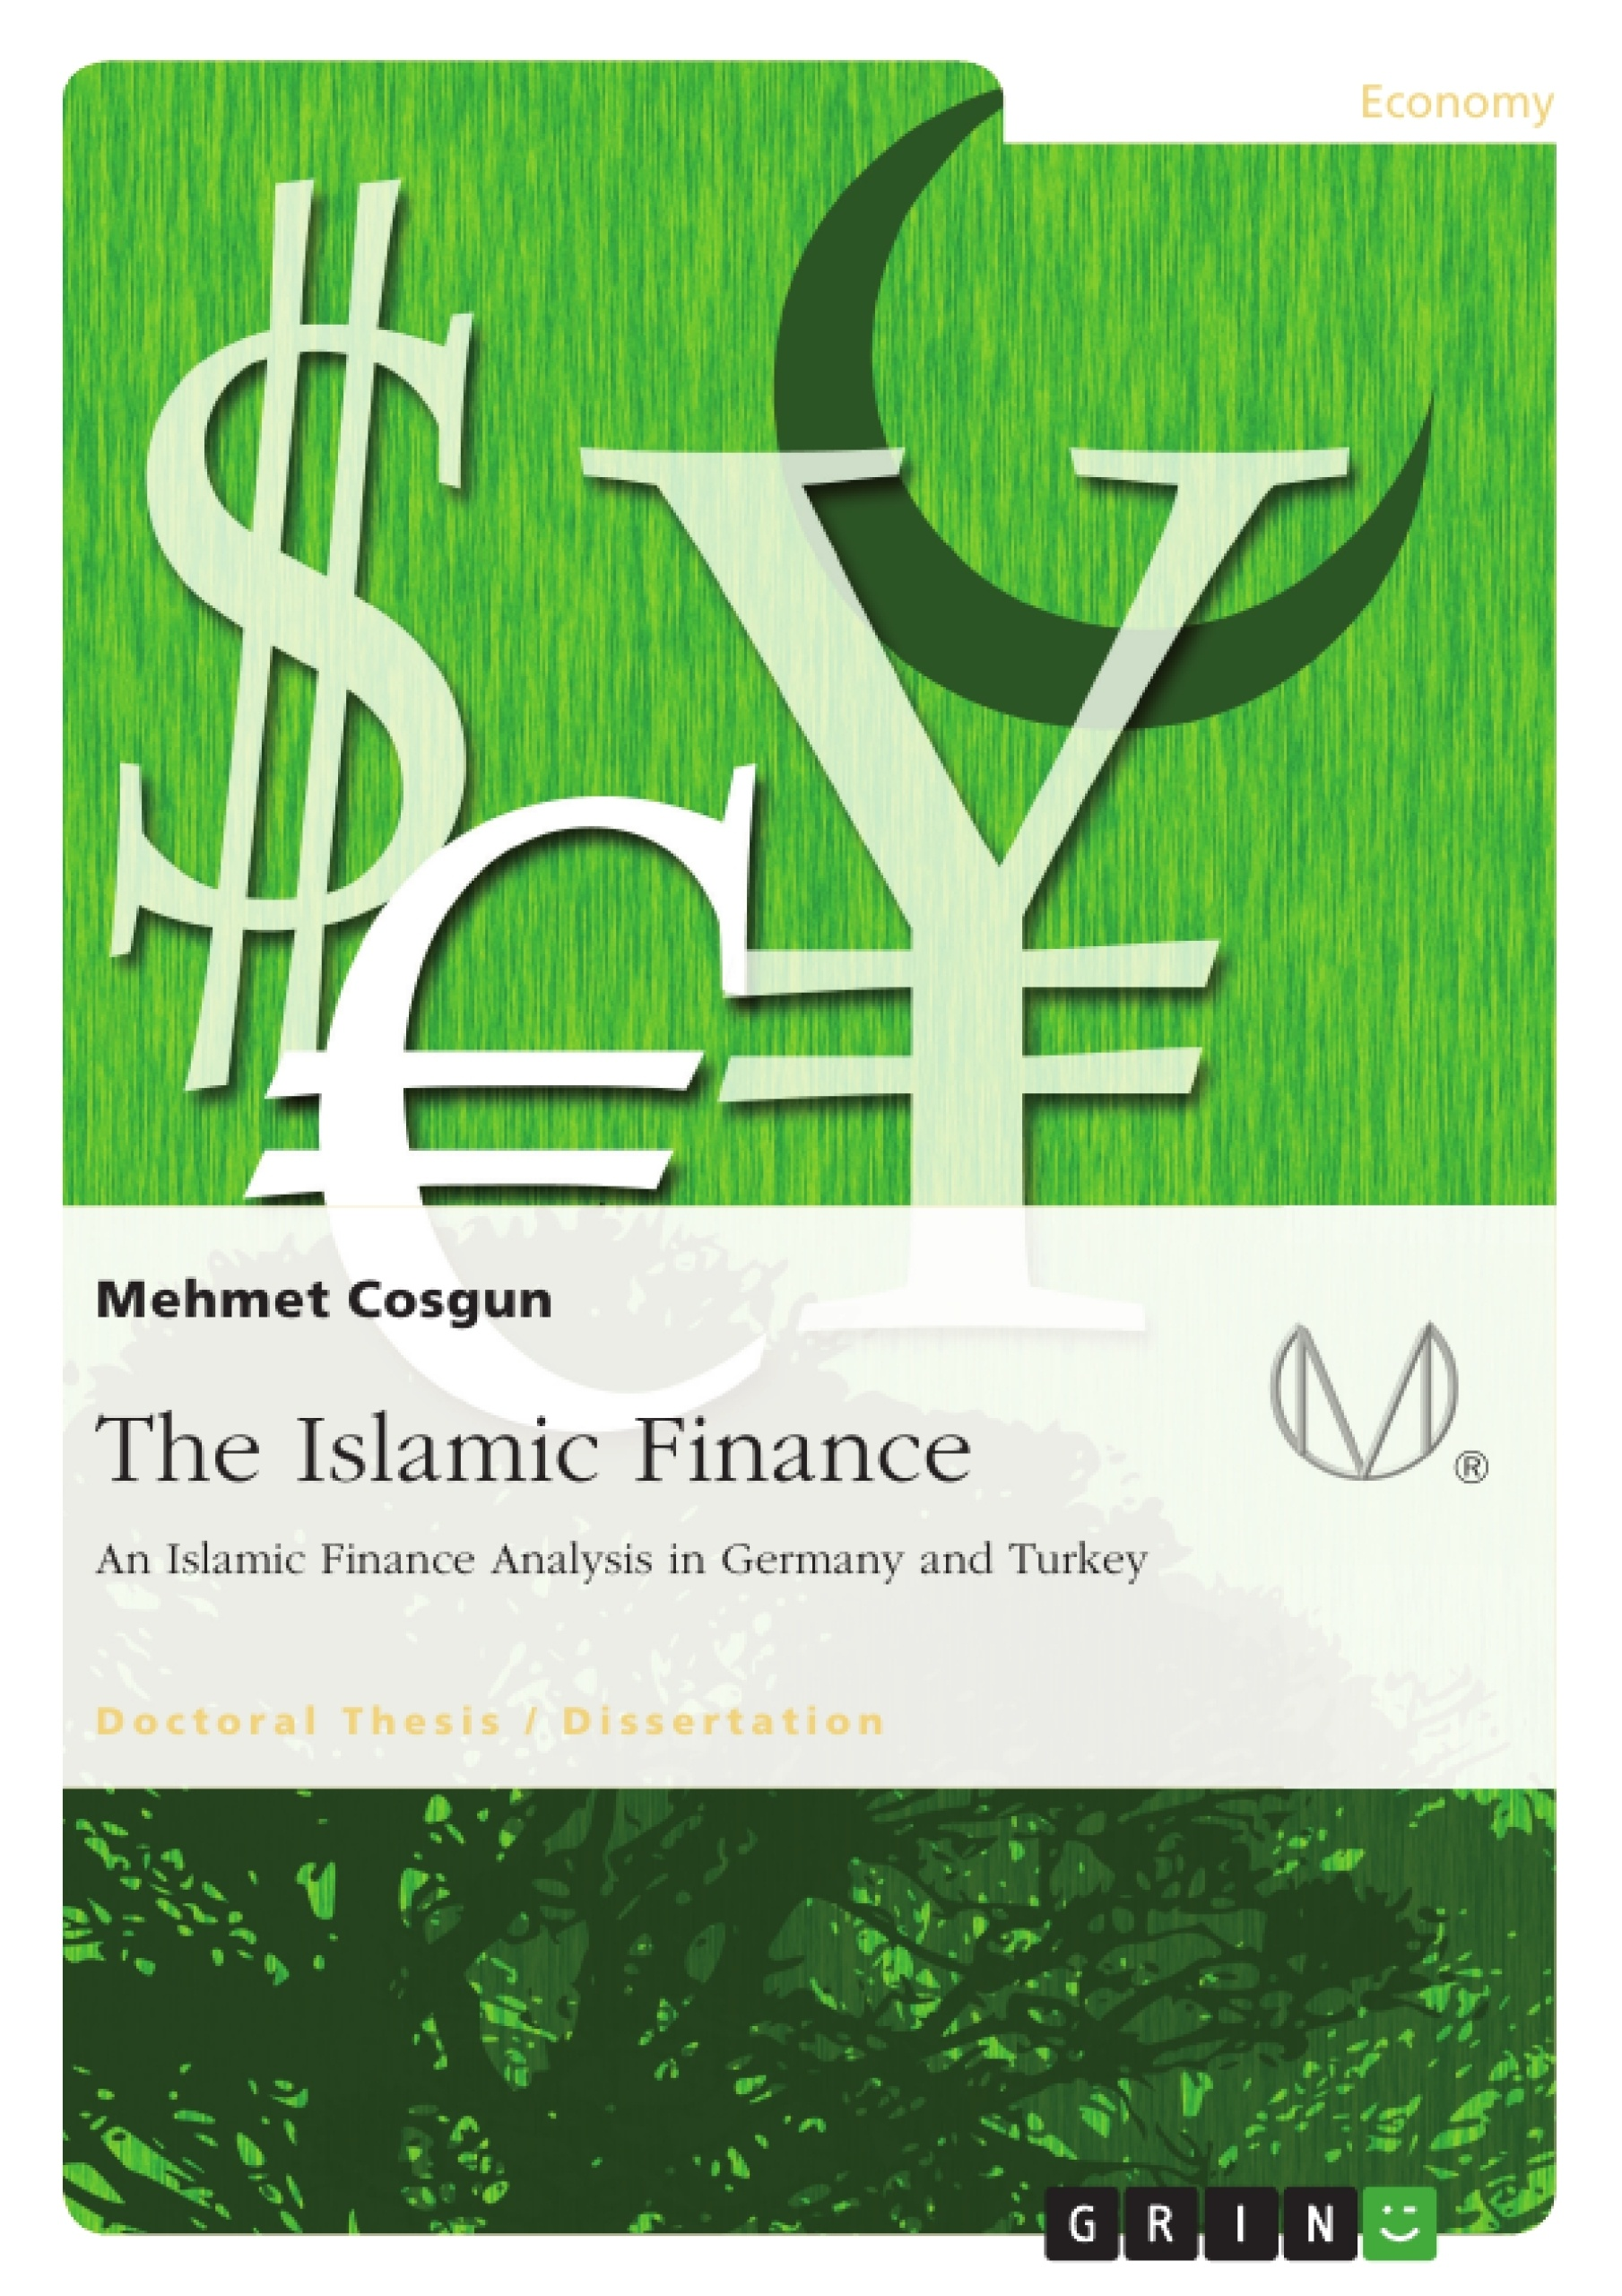 A Thesis on Islamic Finance – Any Topic Suggestions?